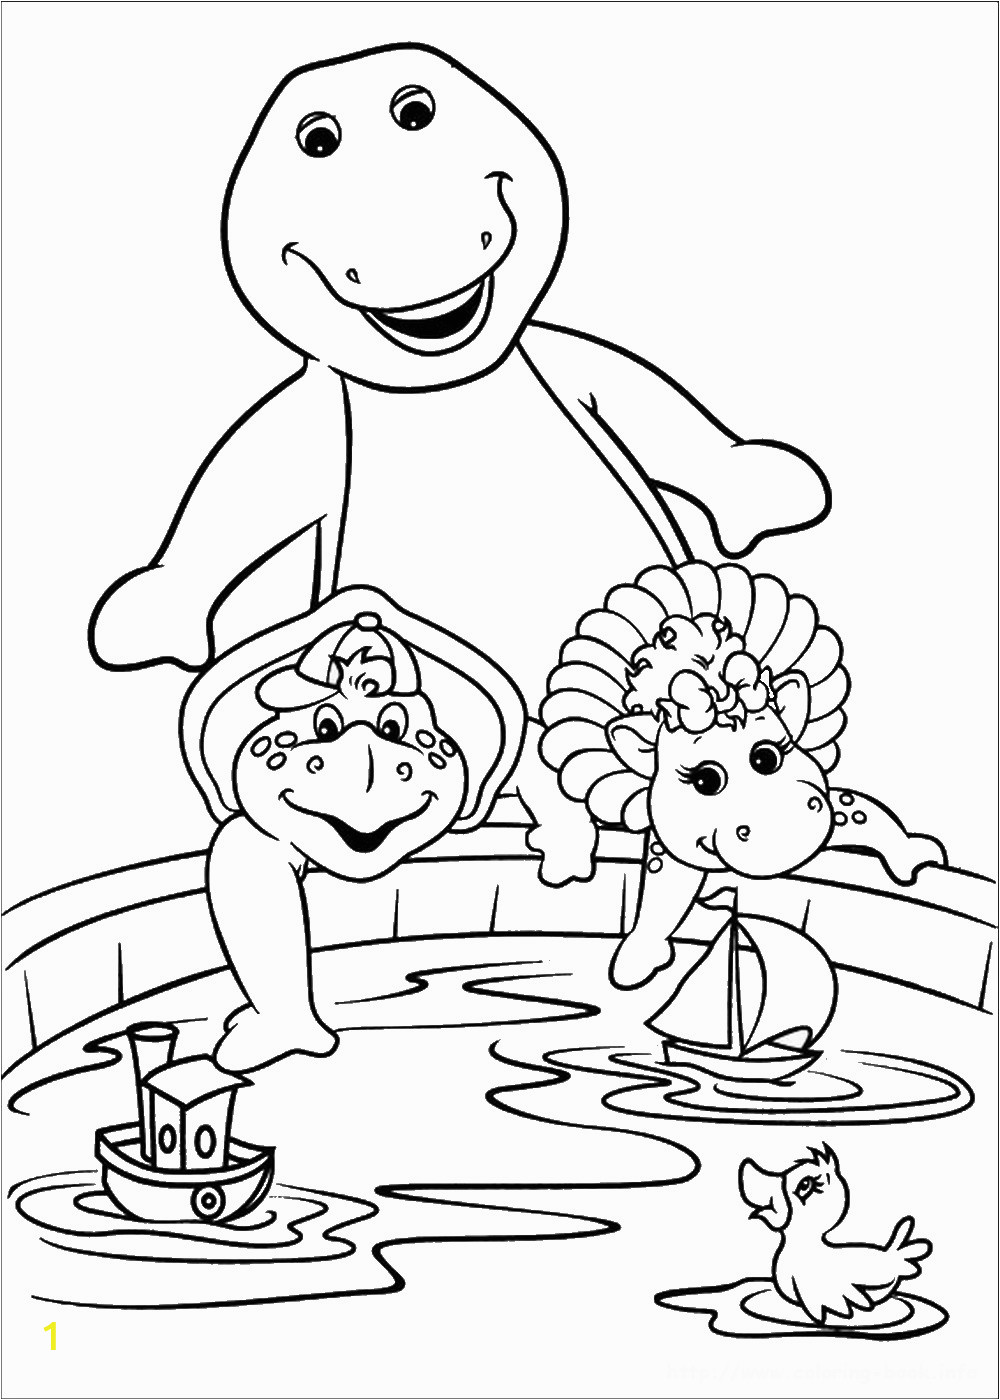 barnie coloring pages